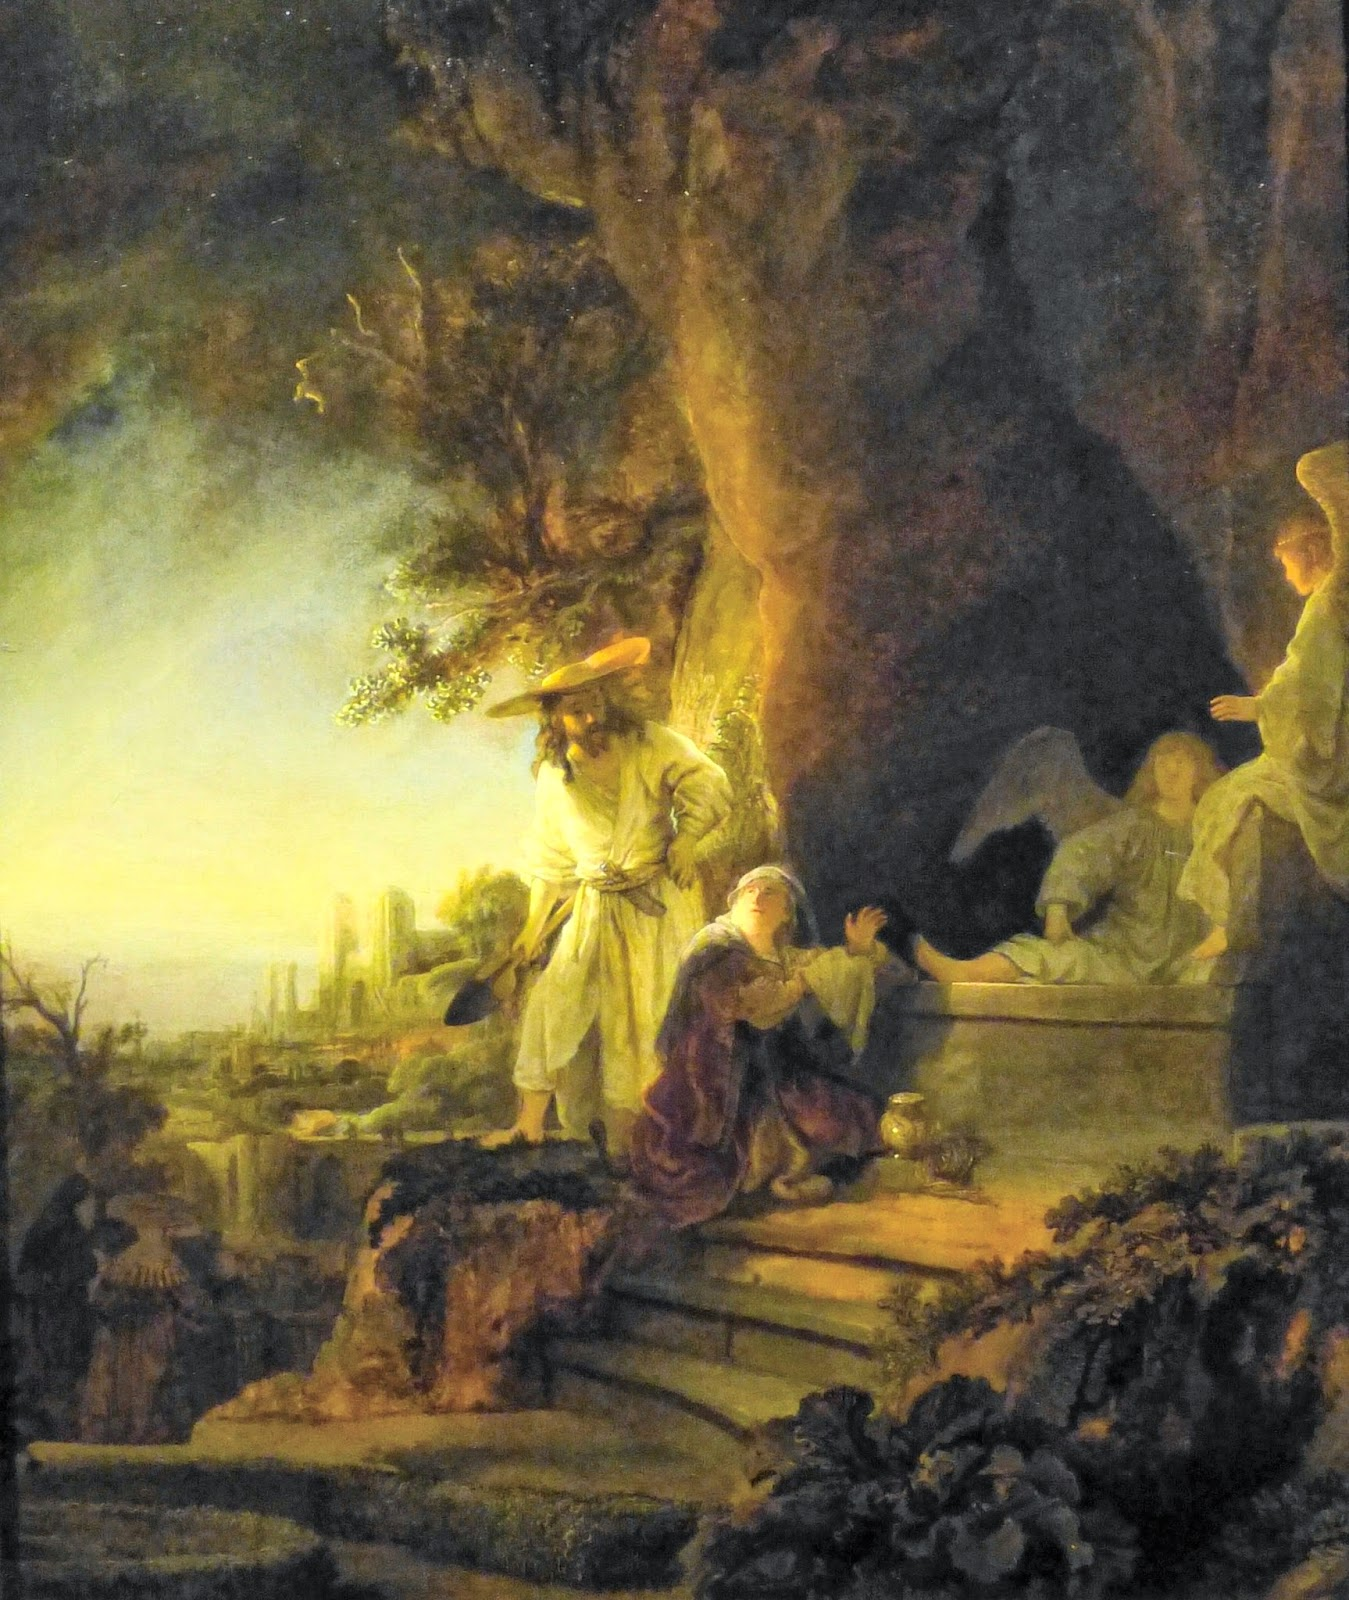 Christ and St Mary Magdalen at the Tomb  by Rembrandt van Rijn (1638)